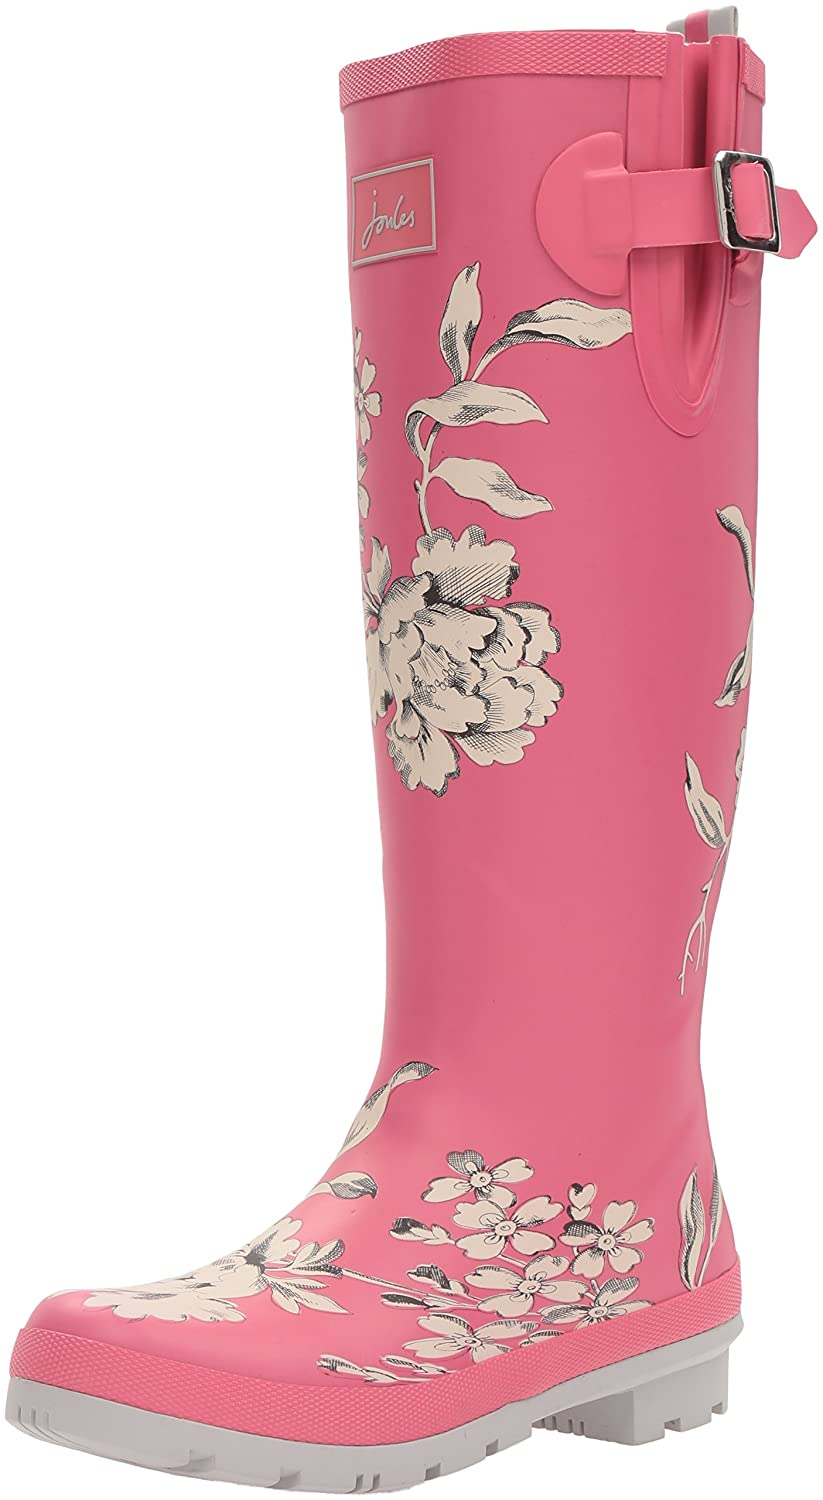 Joules Women's Welly Print Rain Boot B015PIFMG8 10 B(M) US|True Pink Floral